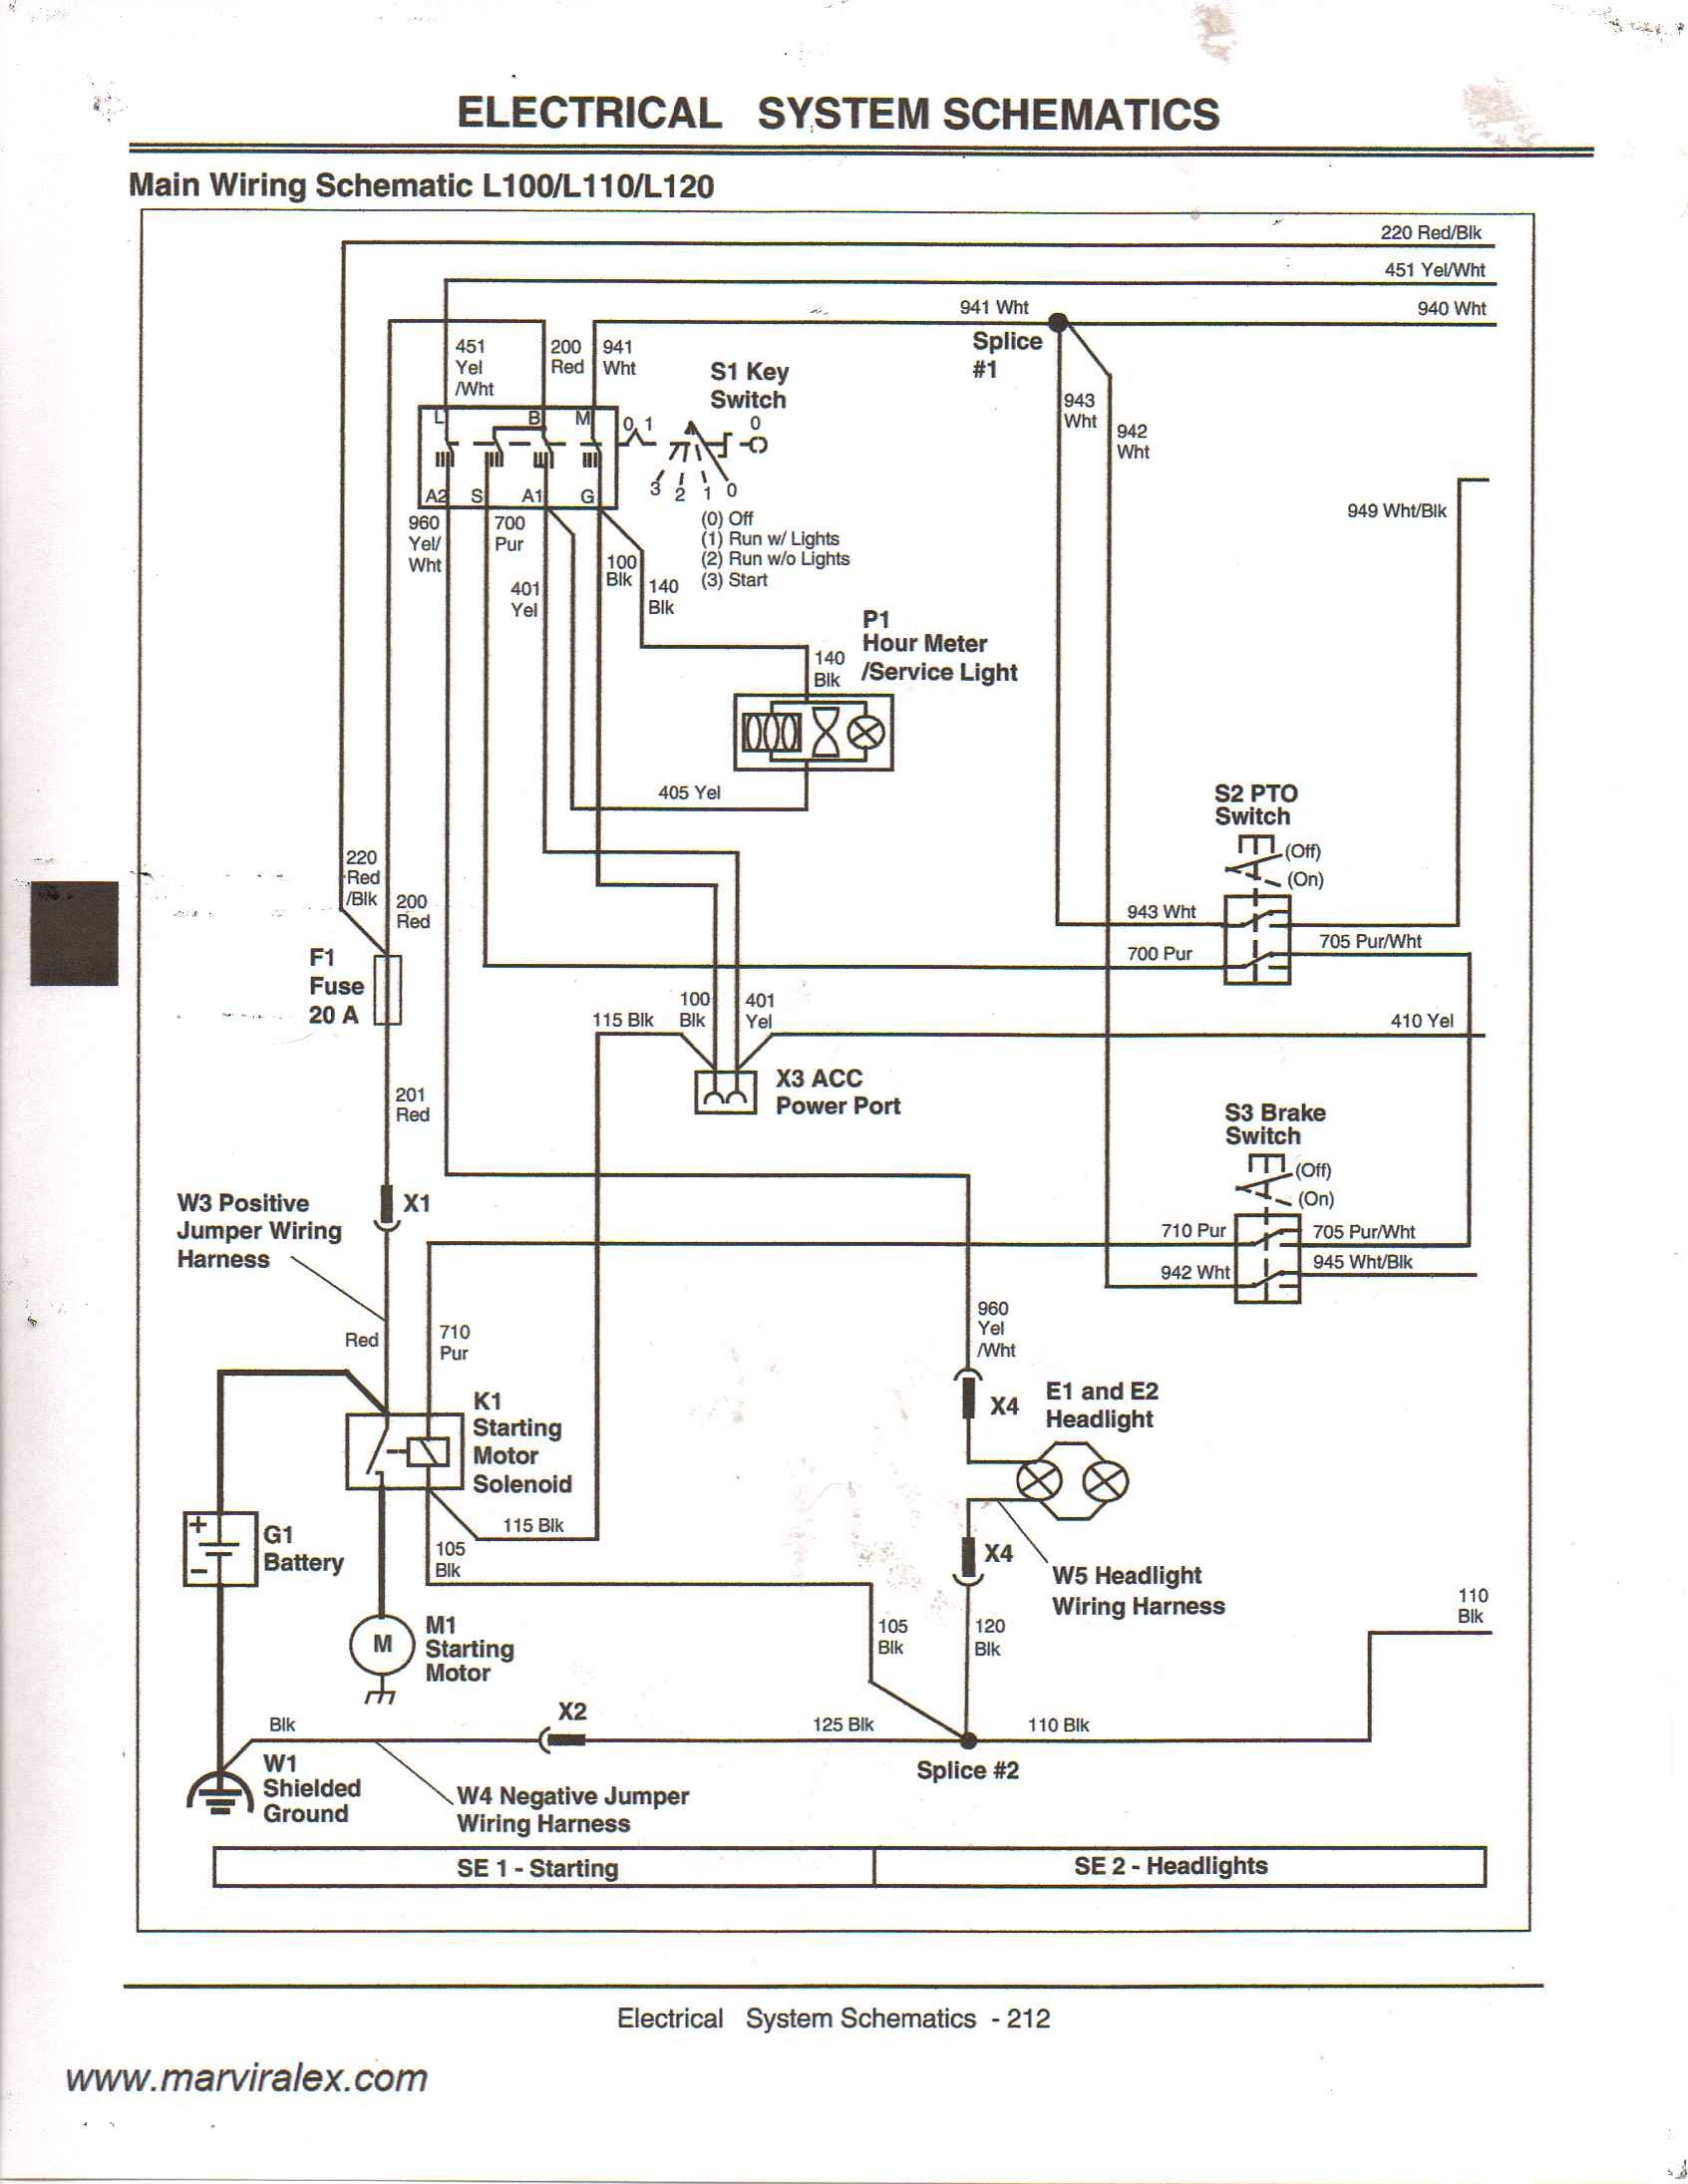 John Deere 345 Schematic Cb 4290] for John Deere 1050 Tractor Wiring Diagram Of John Deere 345 Schematic Need A 345 Wiring Diagram Pdf Please